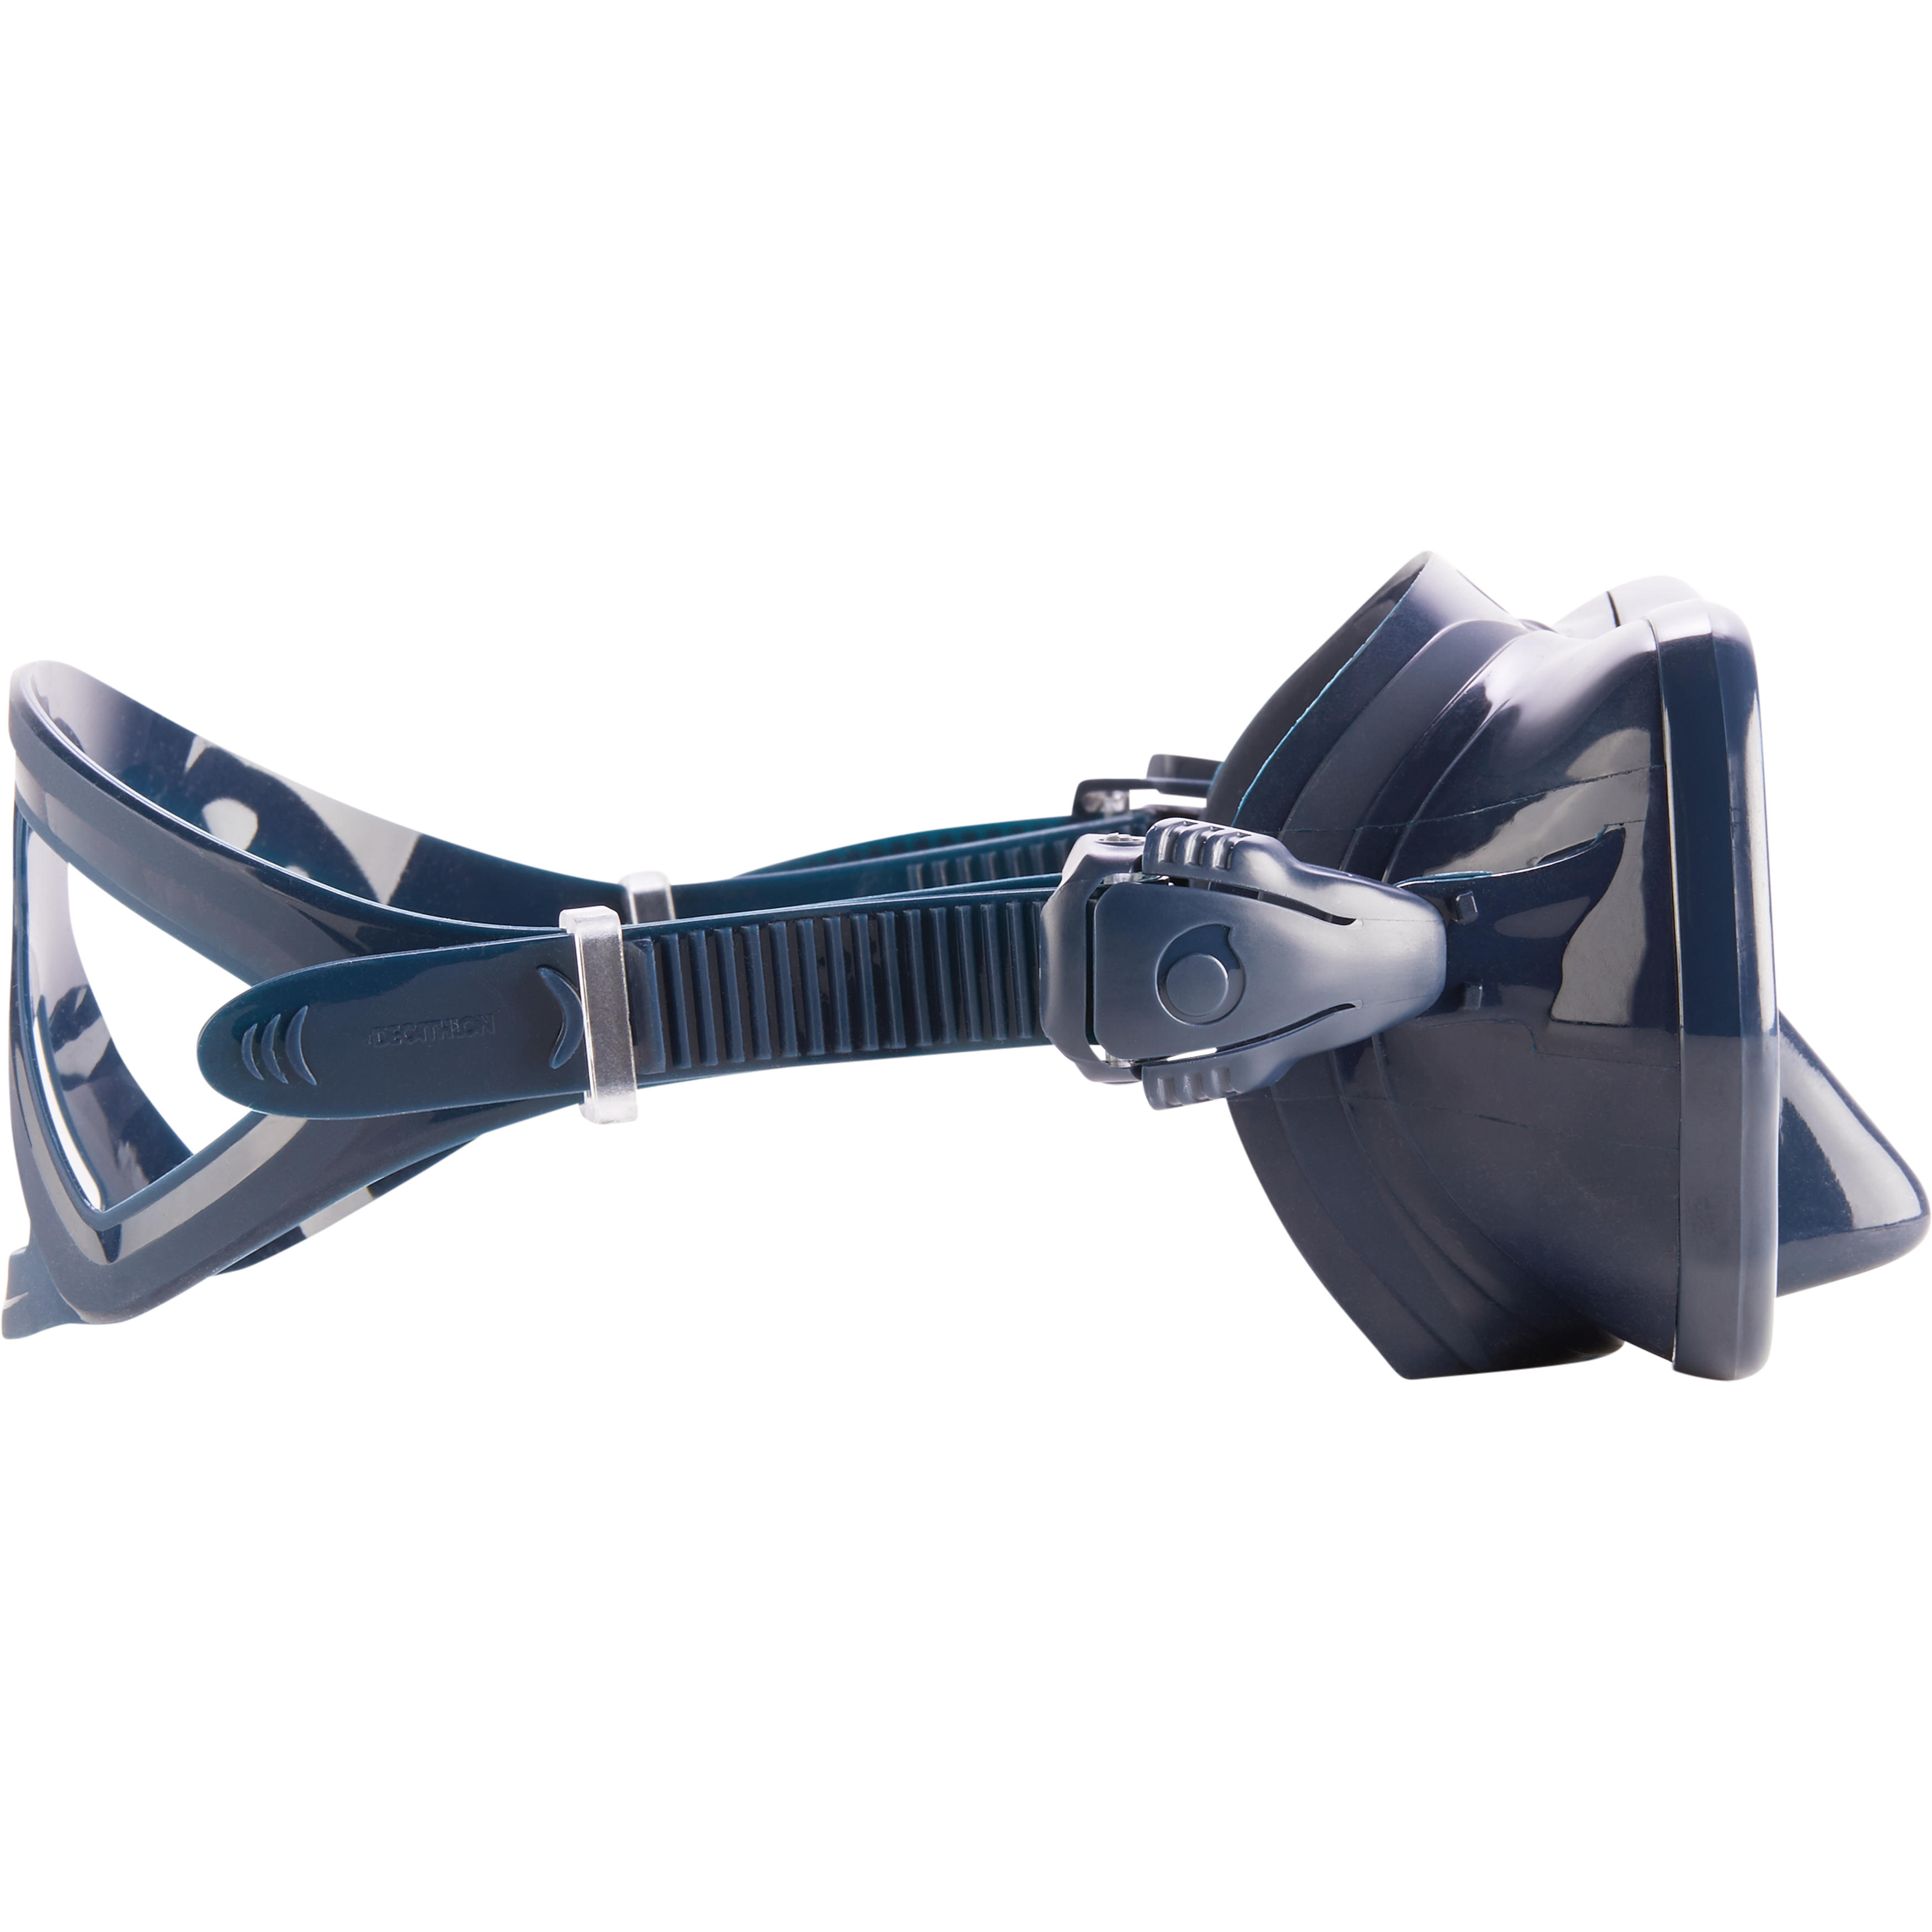 Diving mask SCD 500 double lens blue skirt and fluo strapping